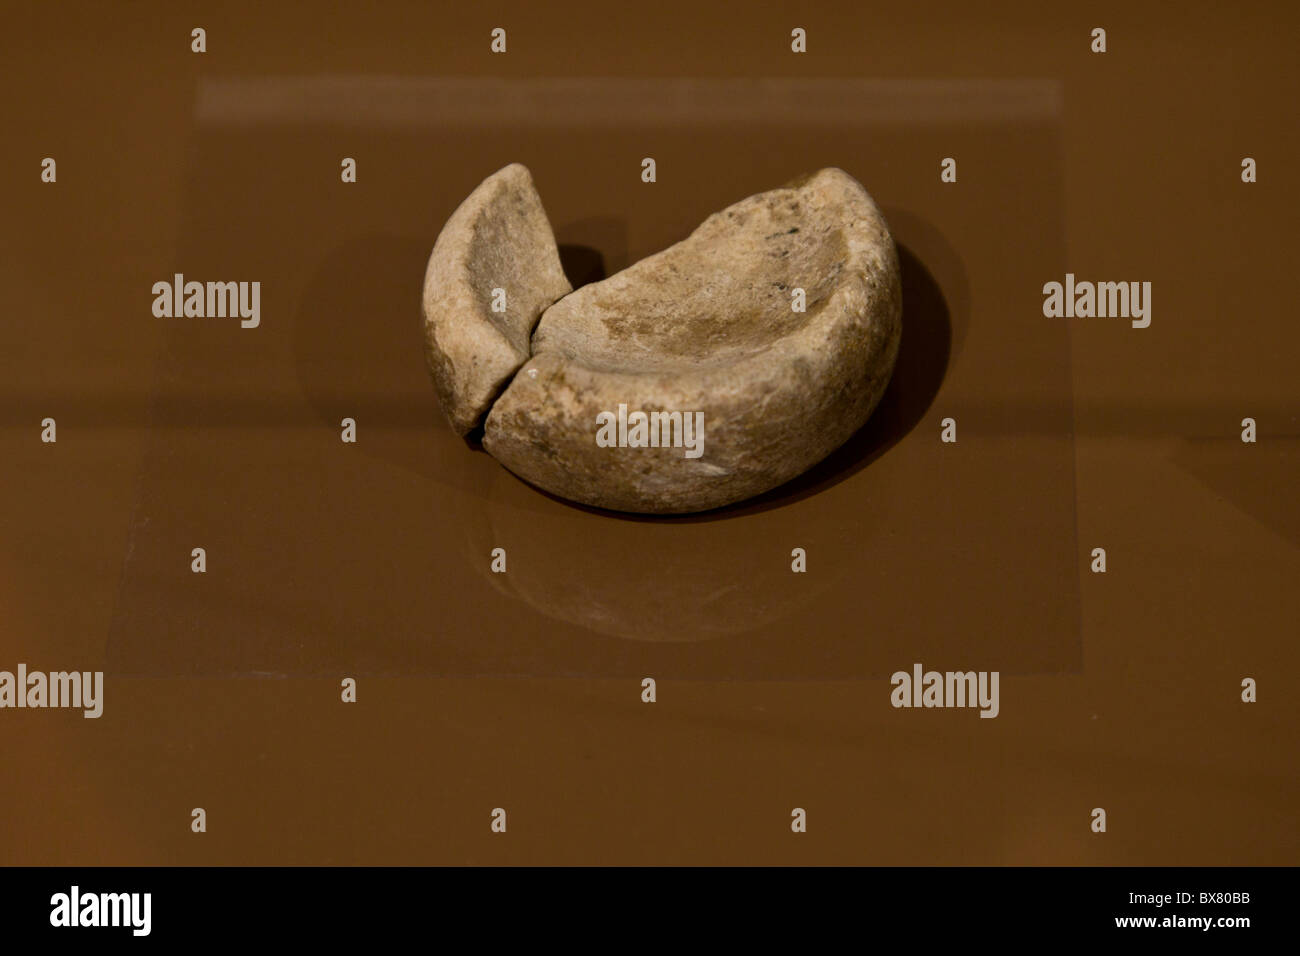 Stone discoidal used for the Native American game Chunkey at the Spiro Mounds Archeological Site Museum in Oklahoma, - Stock Image